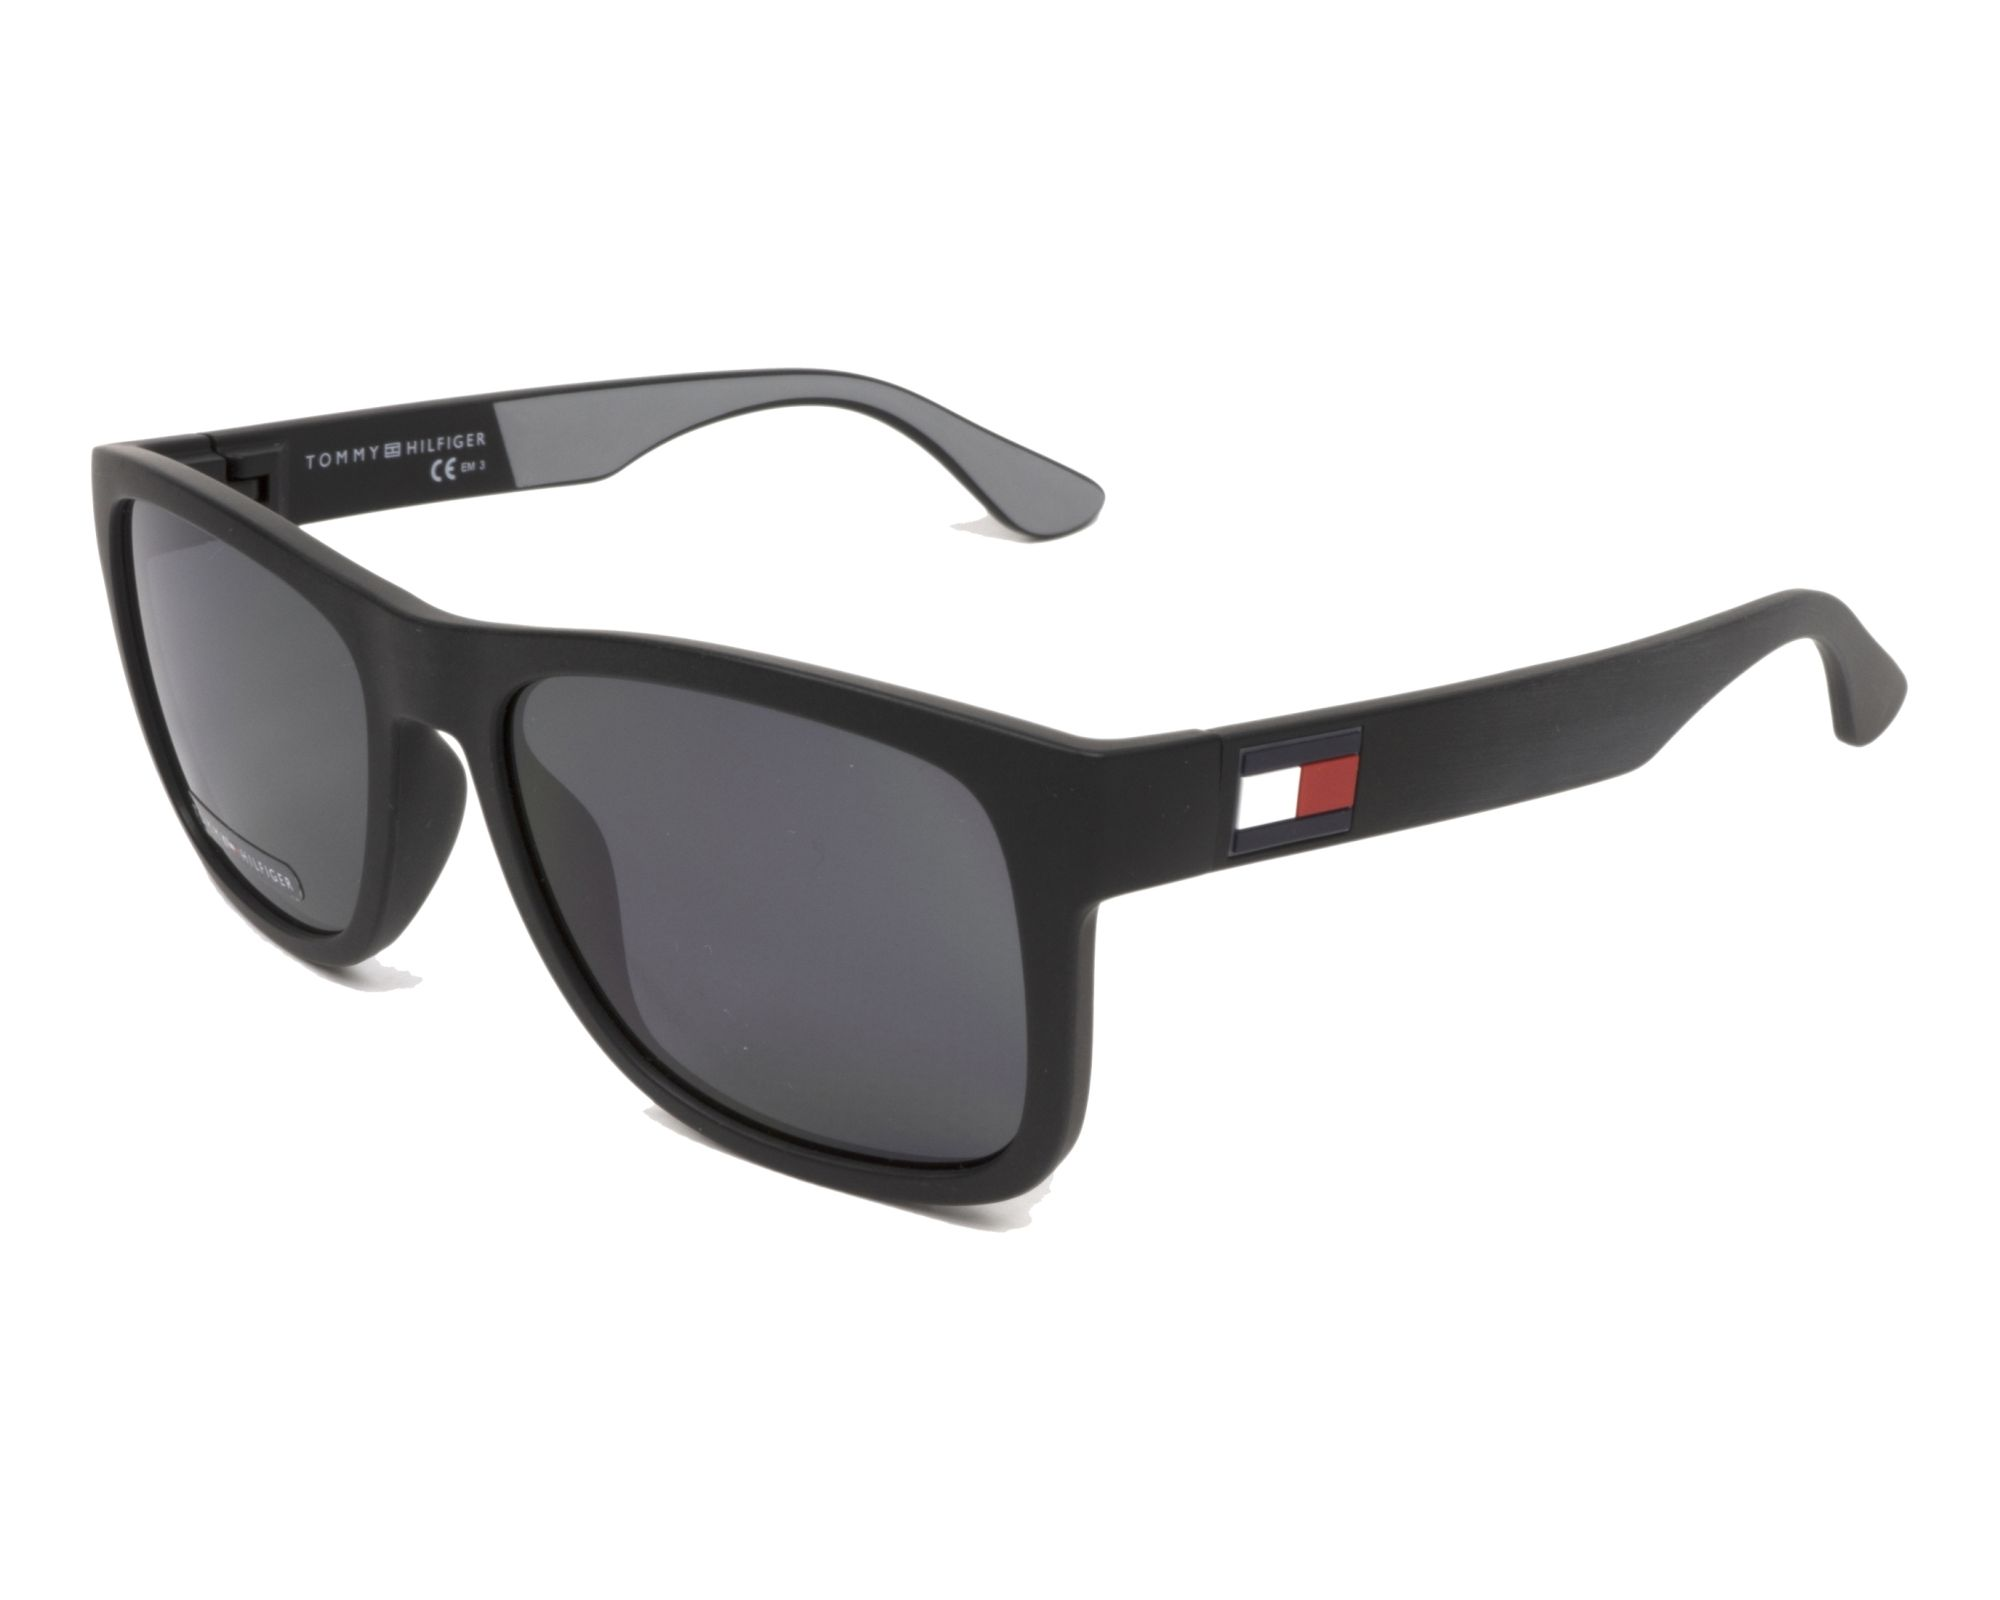 e71f0e6616 Gafas de sol Tommy Hilfiger TH-1556-S 08AIR 52-18 Negra vista